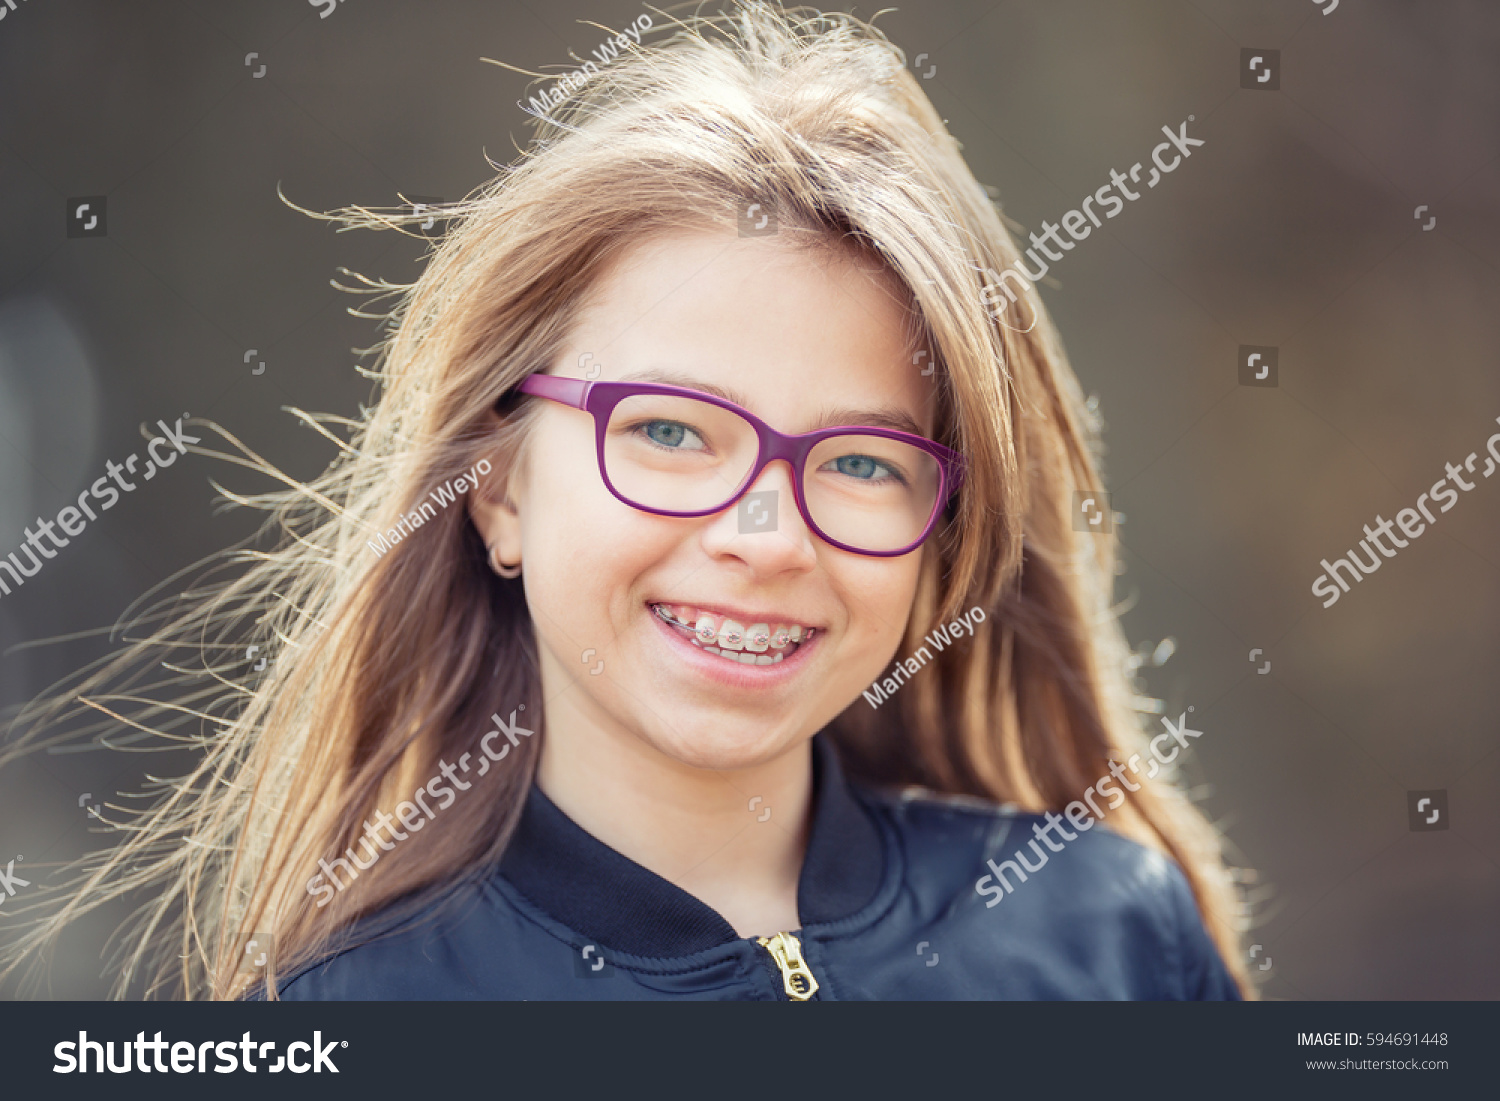 6d3fe21eff16 Portrait of a beautiful smiling young girl with dental braces and glasses.